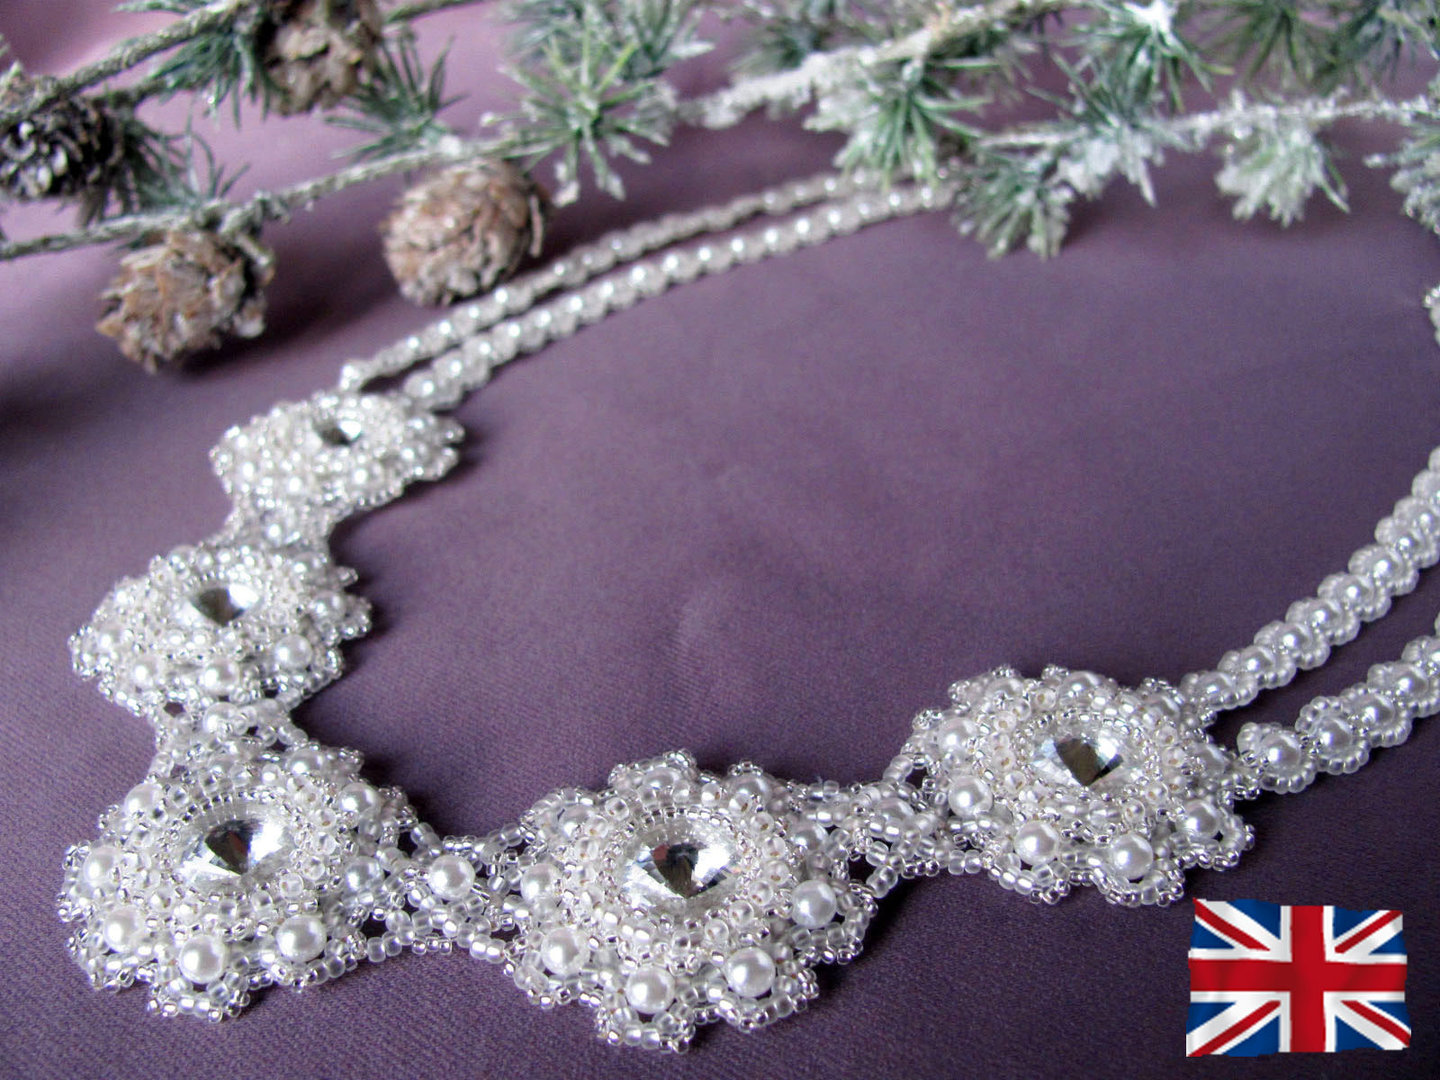 Tutorial for necklace 'Frozen Snow' - English